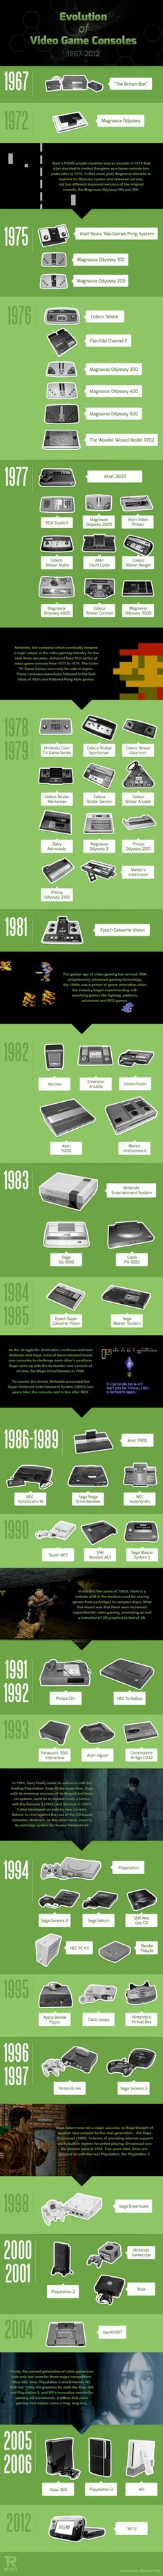 Evolution of Videogame Consoles